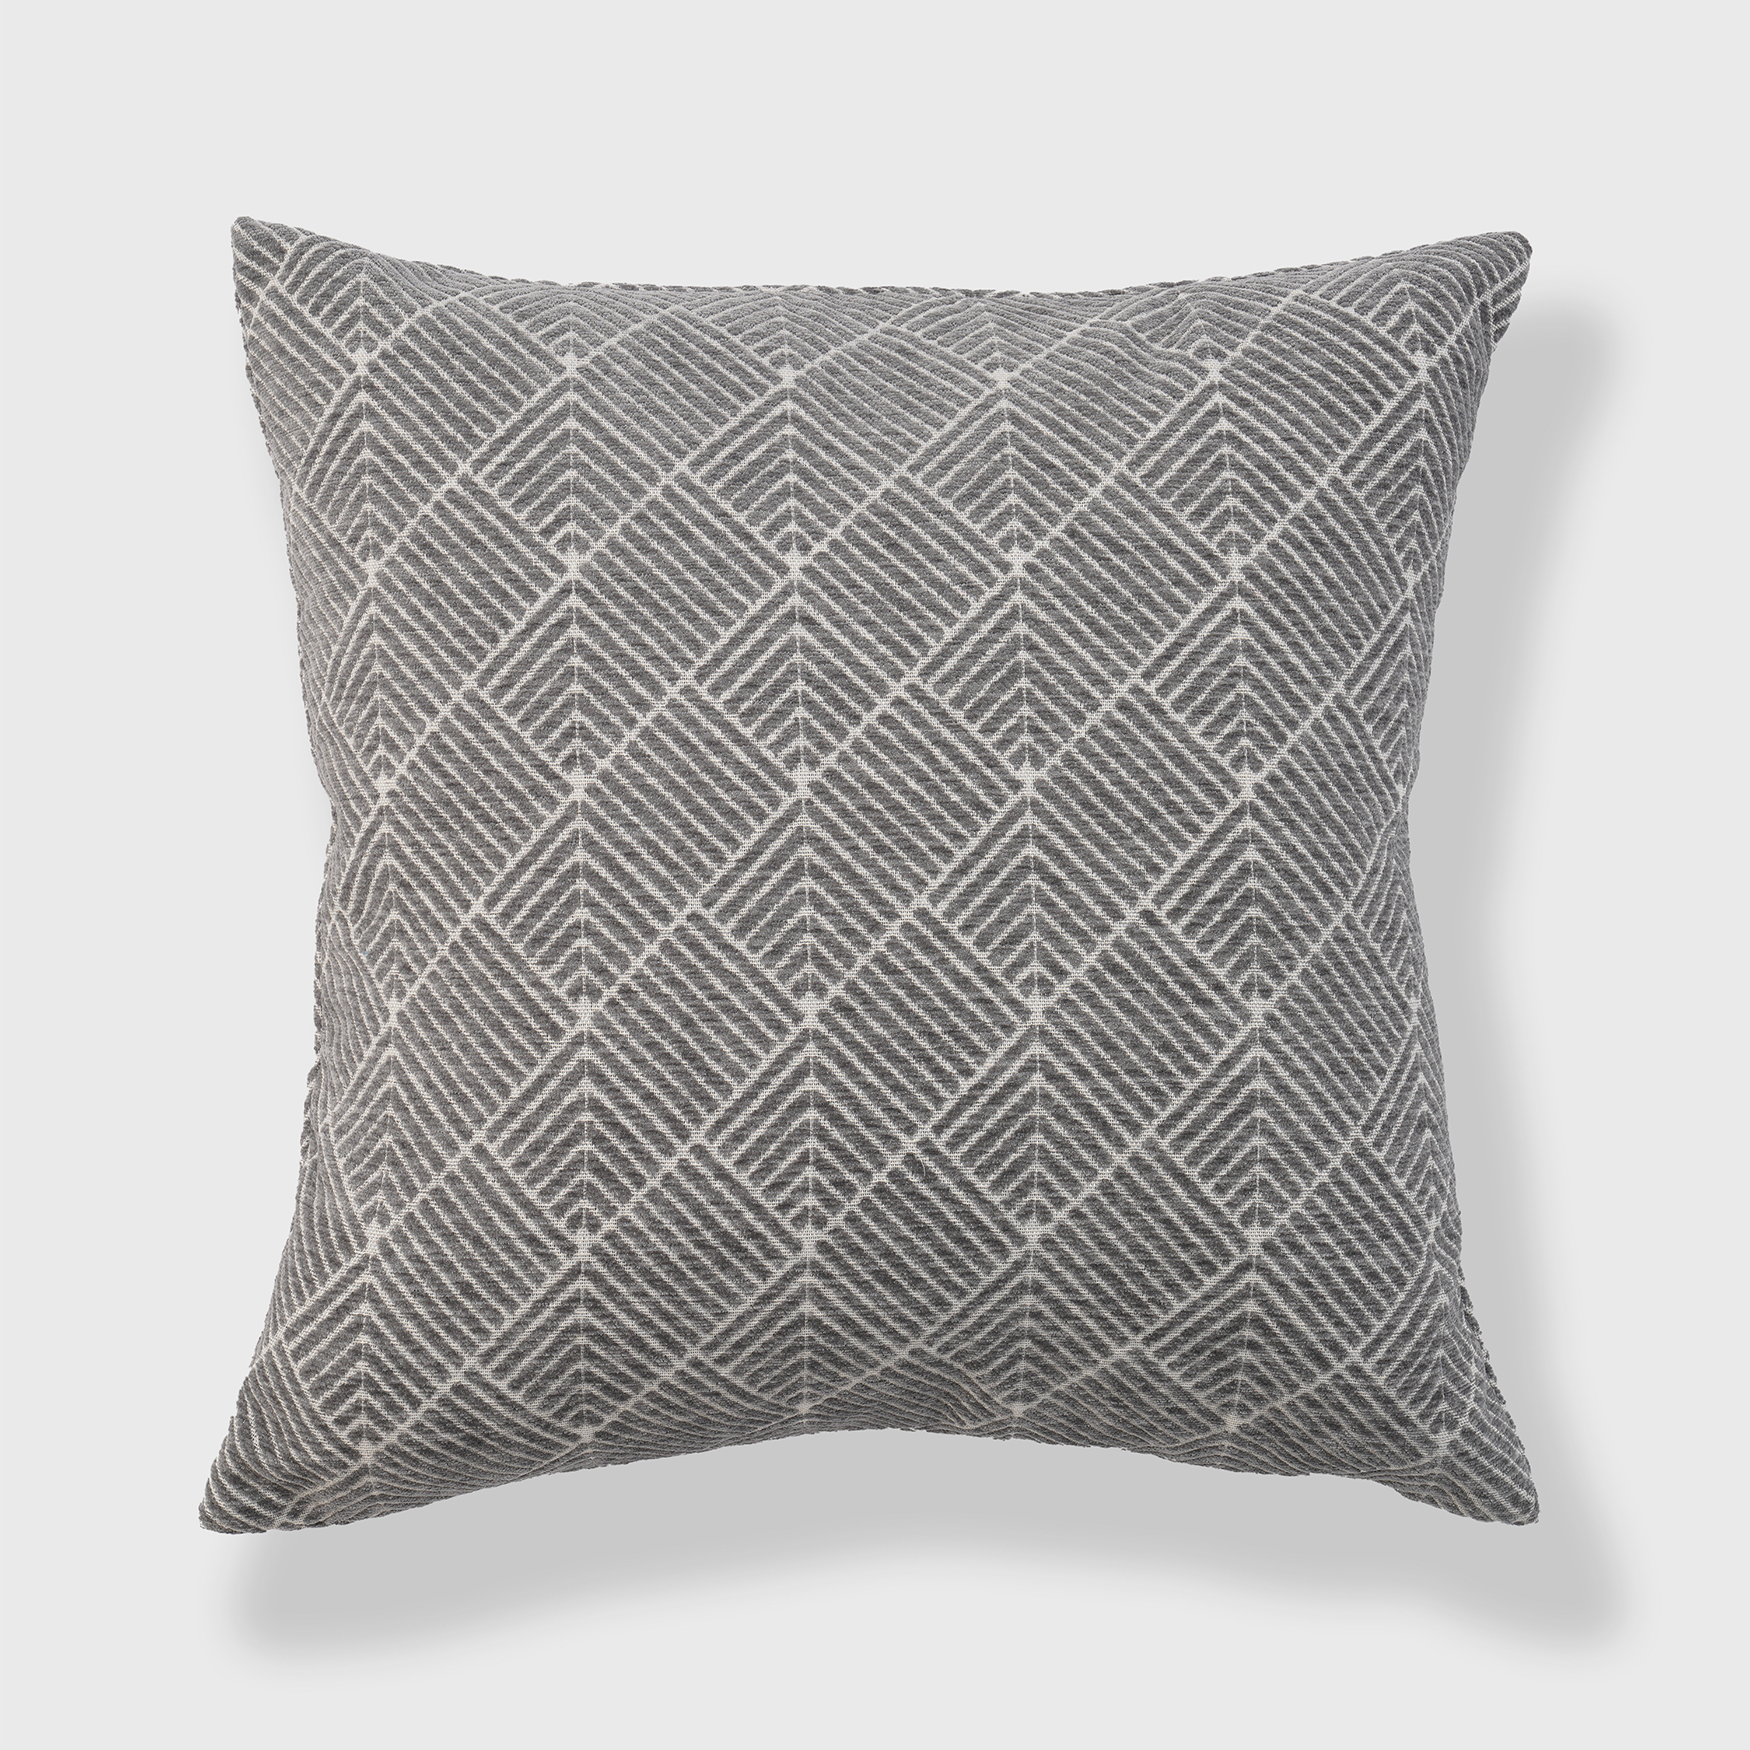 Diamond Geo Chenille Woven Jacquard Accent Pillow,